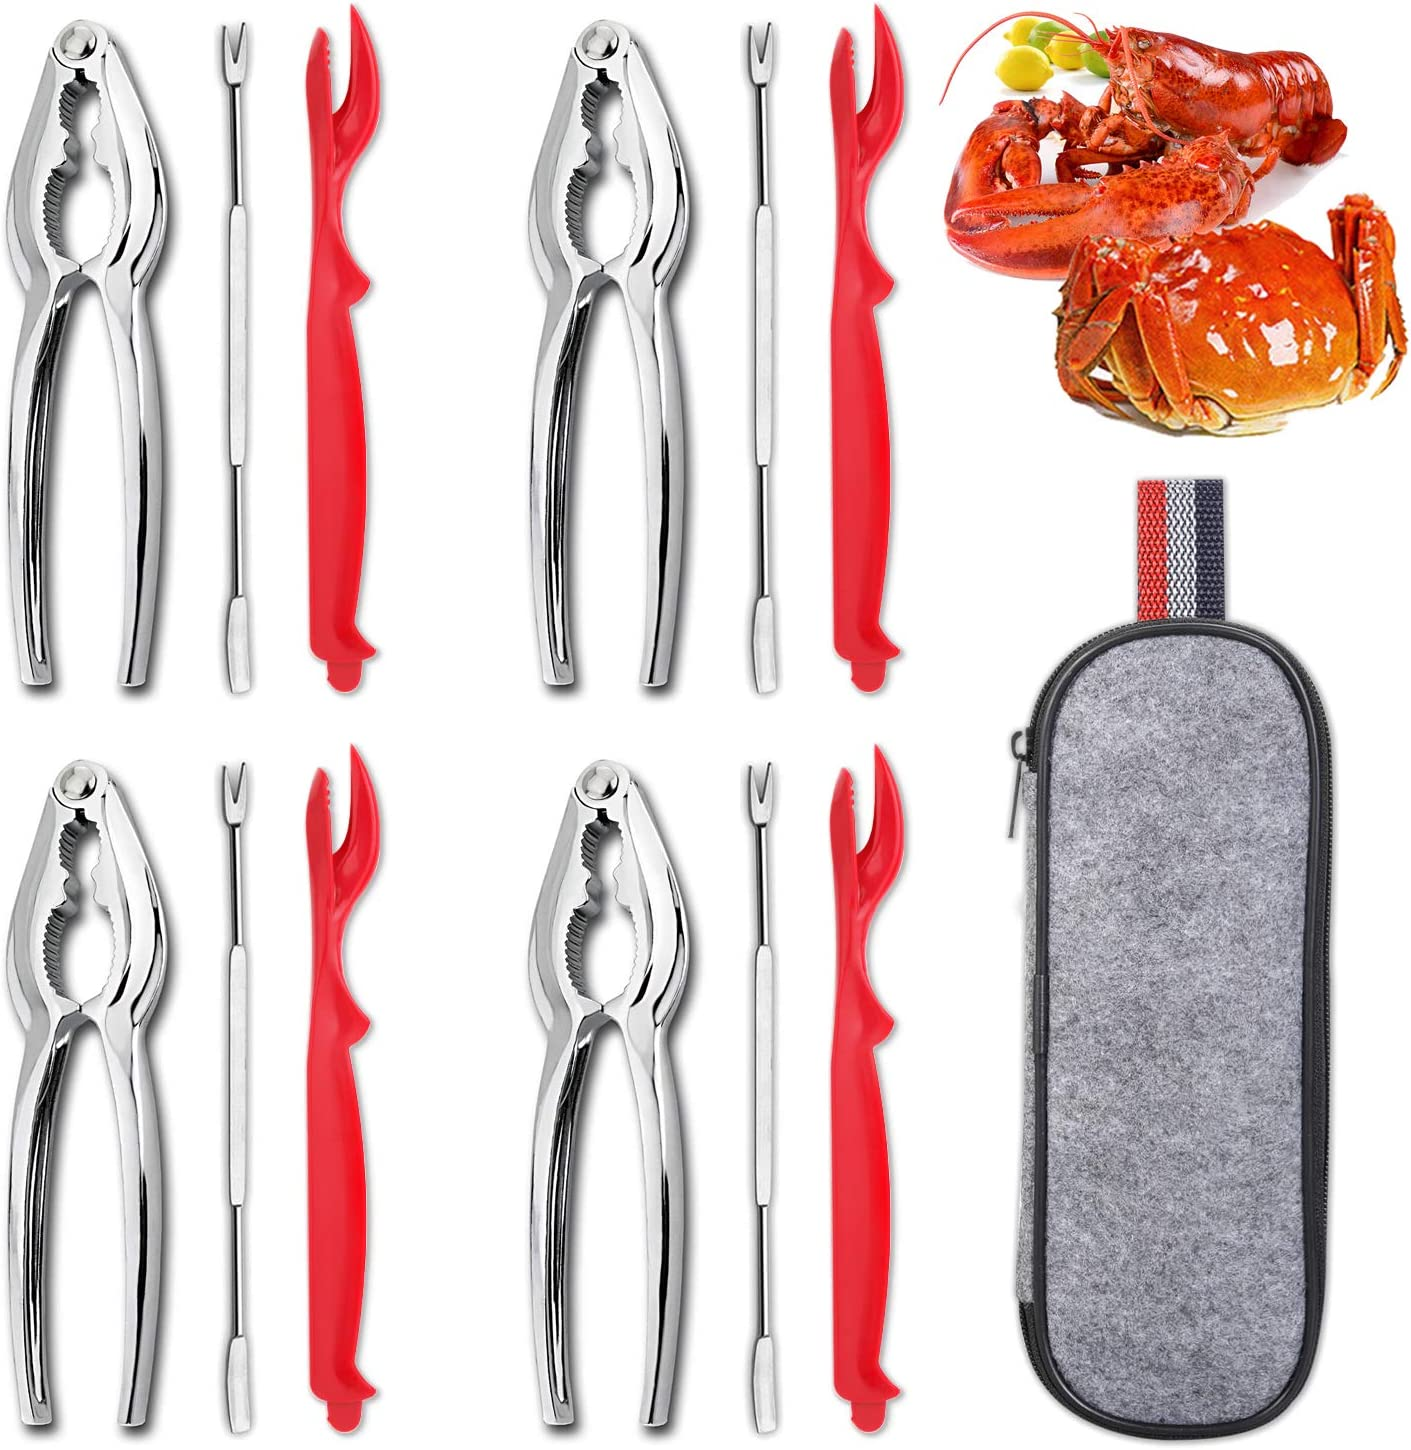 Hiware 13-piece Crab & Lobster Crackers and Tools Set Includes 4 Crab Leg Crackers, 4 Lobster Shellers, 4 Crab Forks/Picks and Portable Storage Bag - Stainless Steel Seafood Tools